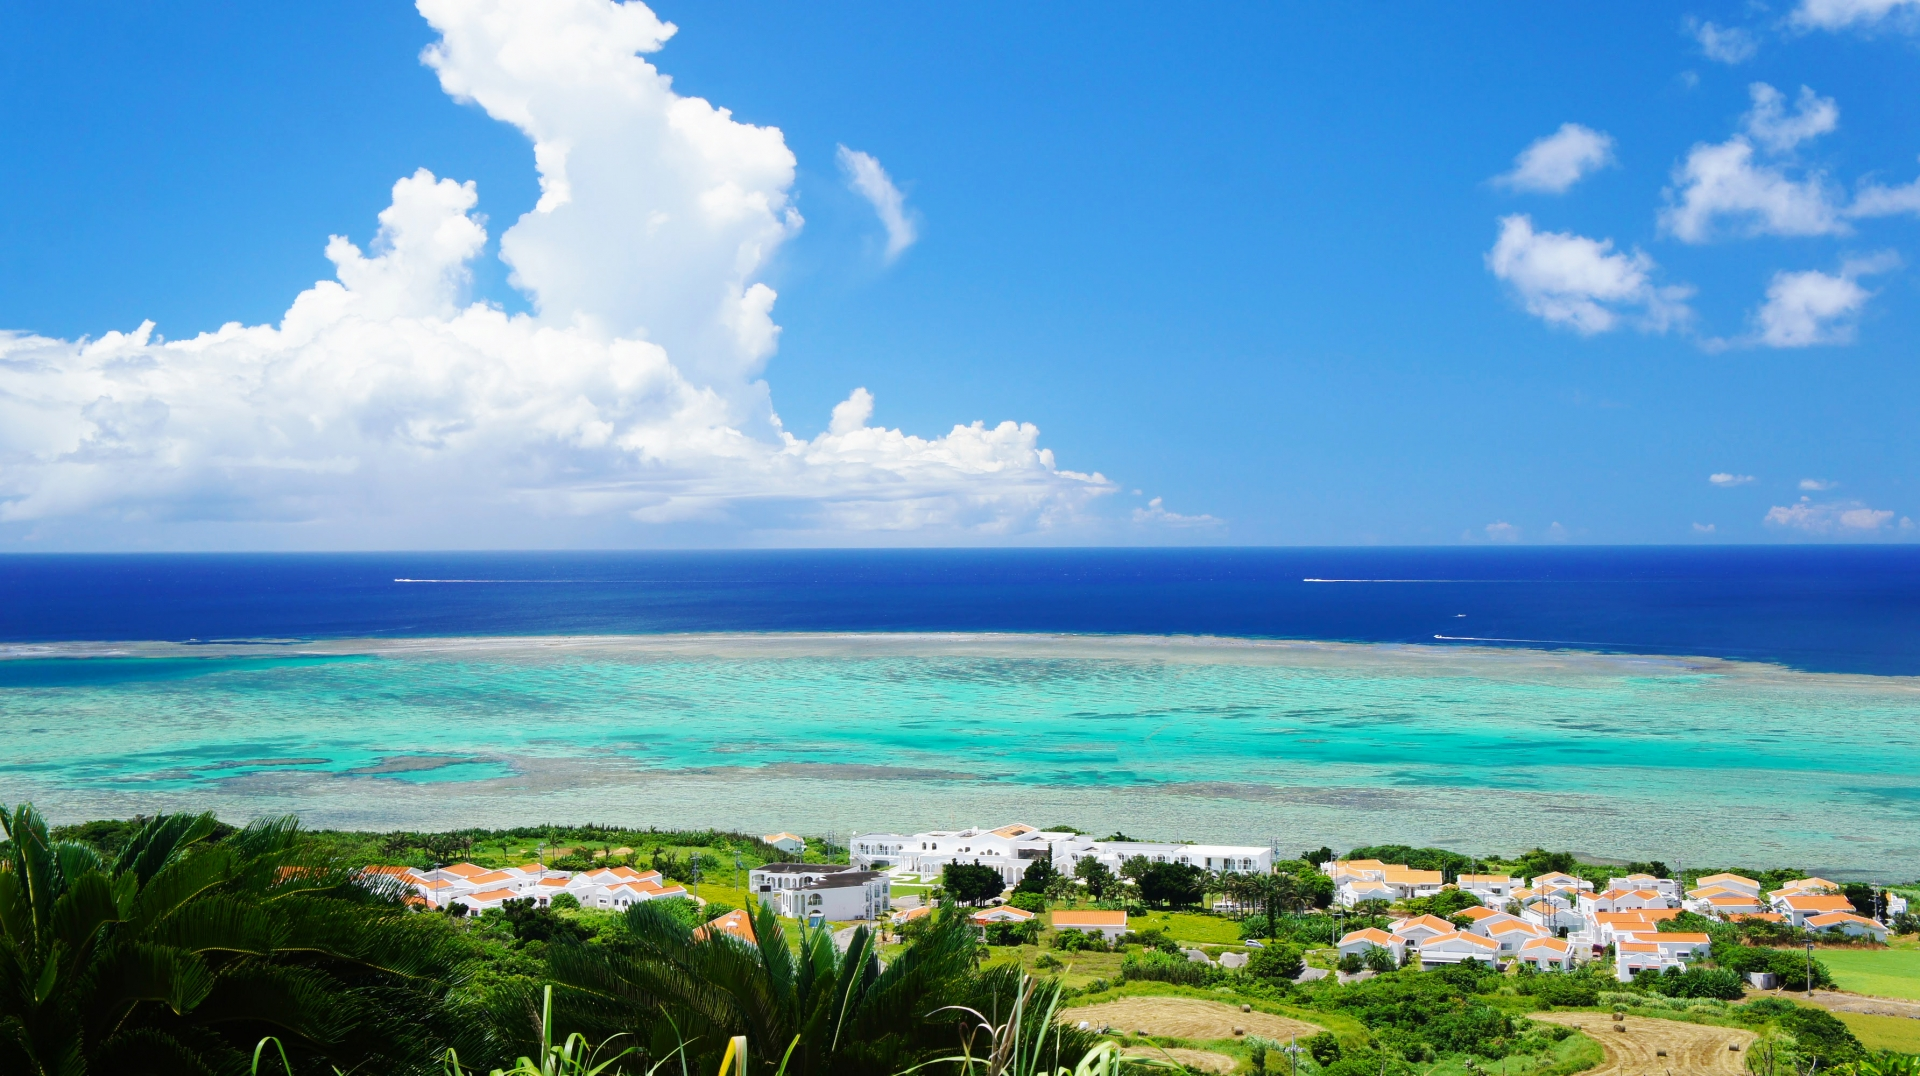 Okinawa Is The Most Ideal Destination In An For Summer Time And There Are Numbers Of Resort Hotels Spread S Main Island Remote Islands